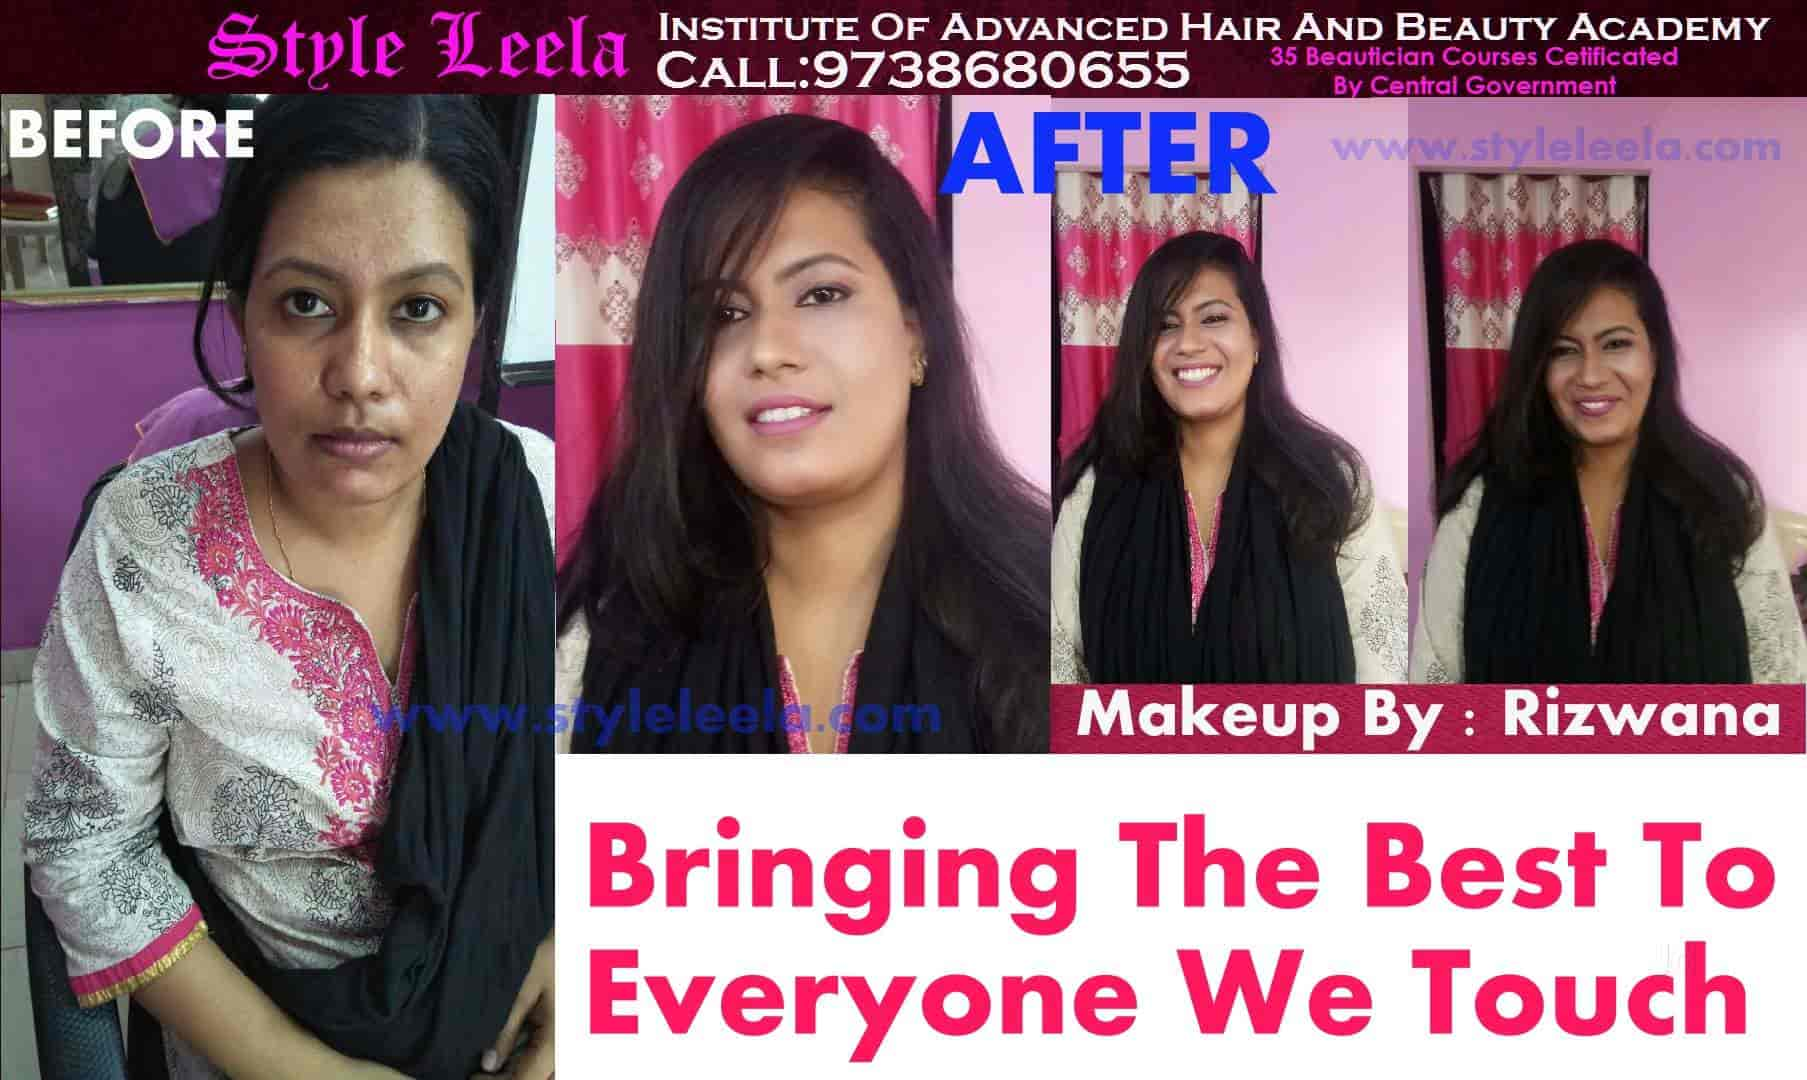 Institute Of Advanced Hair And Beauty Academy Pvt Ltd Photos